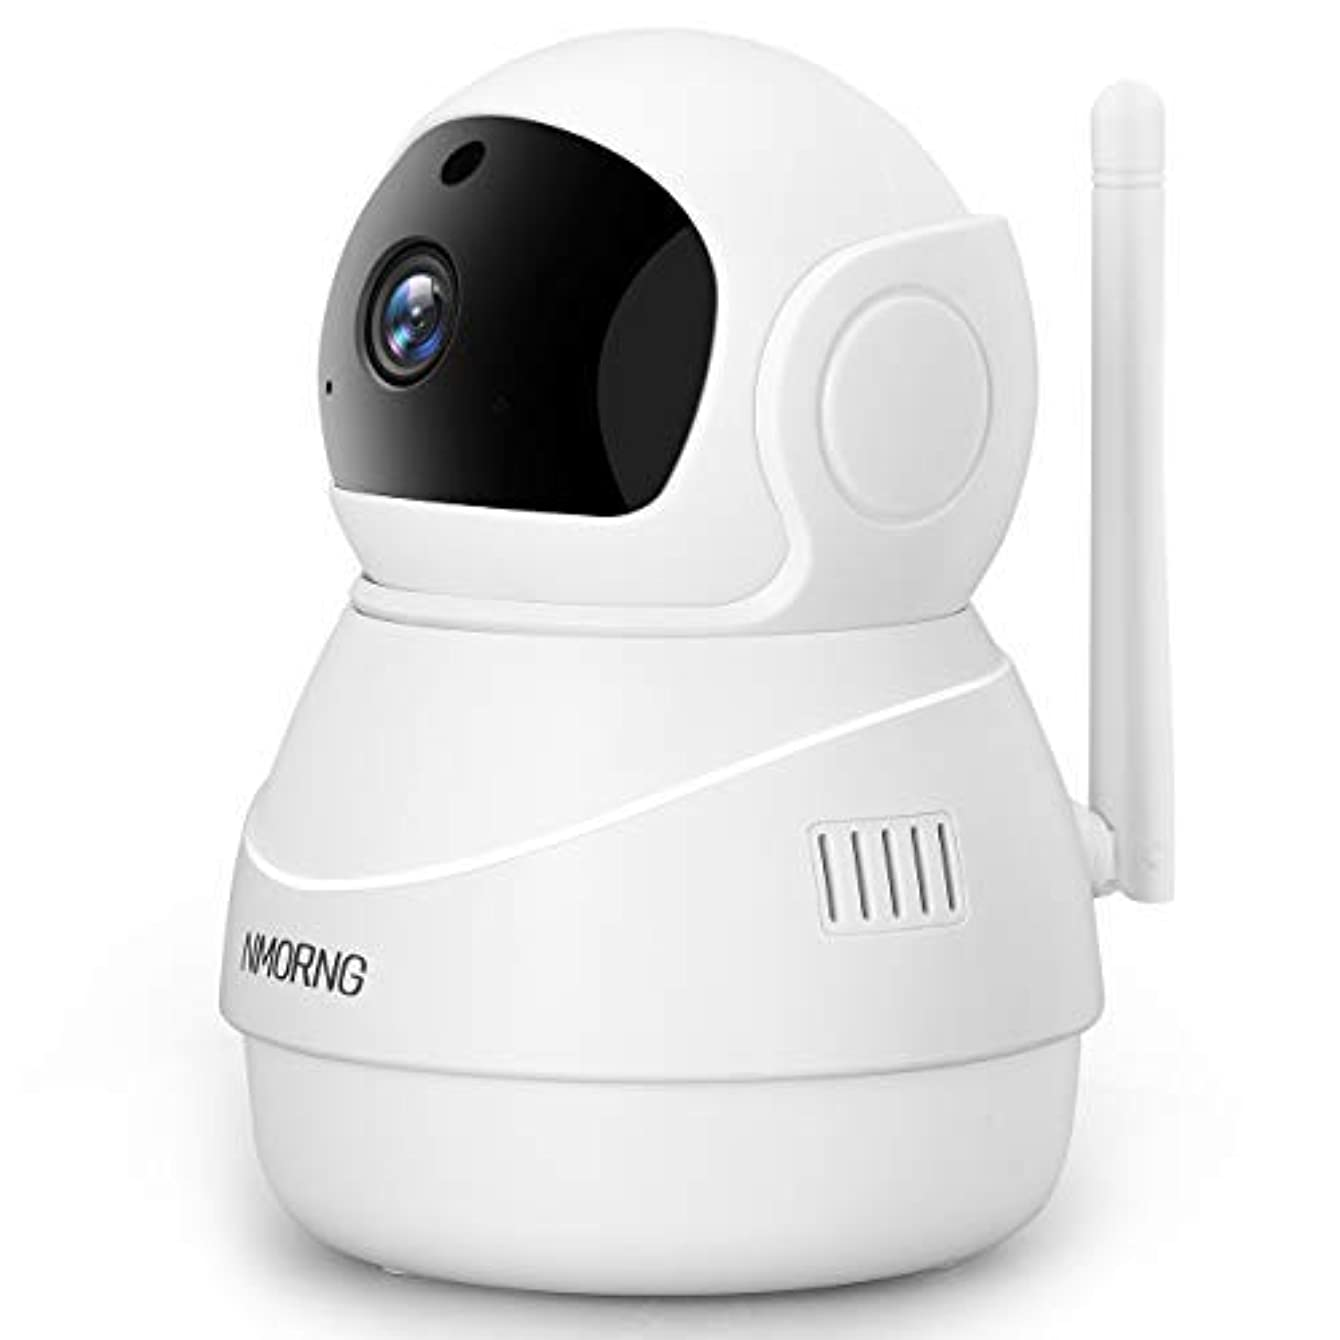 NMORNG 1080P Security WiFi Camera with Night Vision, Two-Way Audio, Motion Detect Wireless Home Surveillance IP Camera, Baby / Pet Monitor, APP Remote Control, Cloud and SD Card Storage